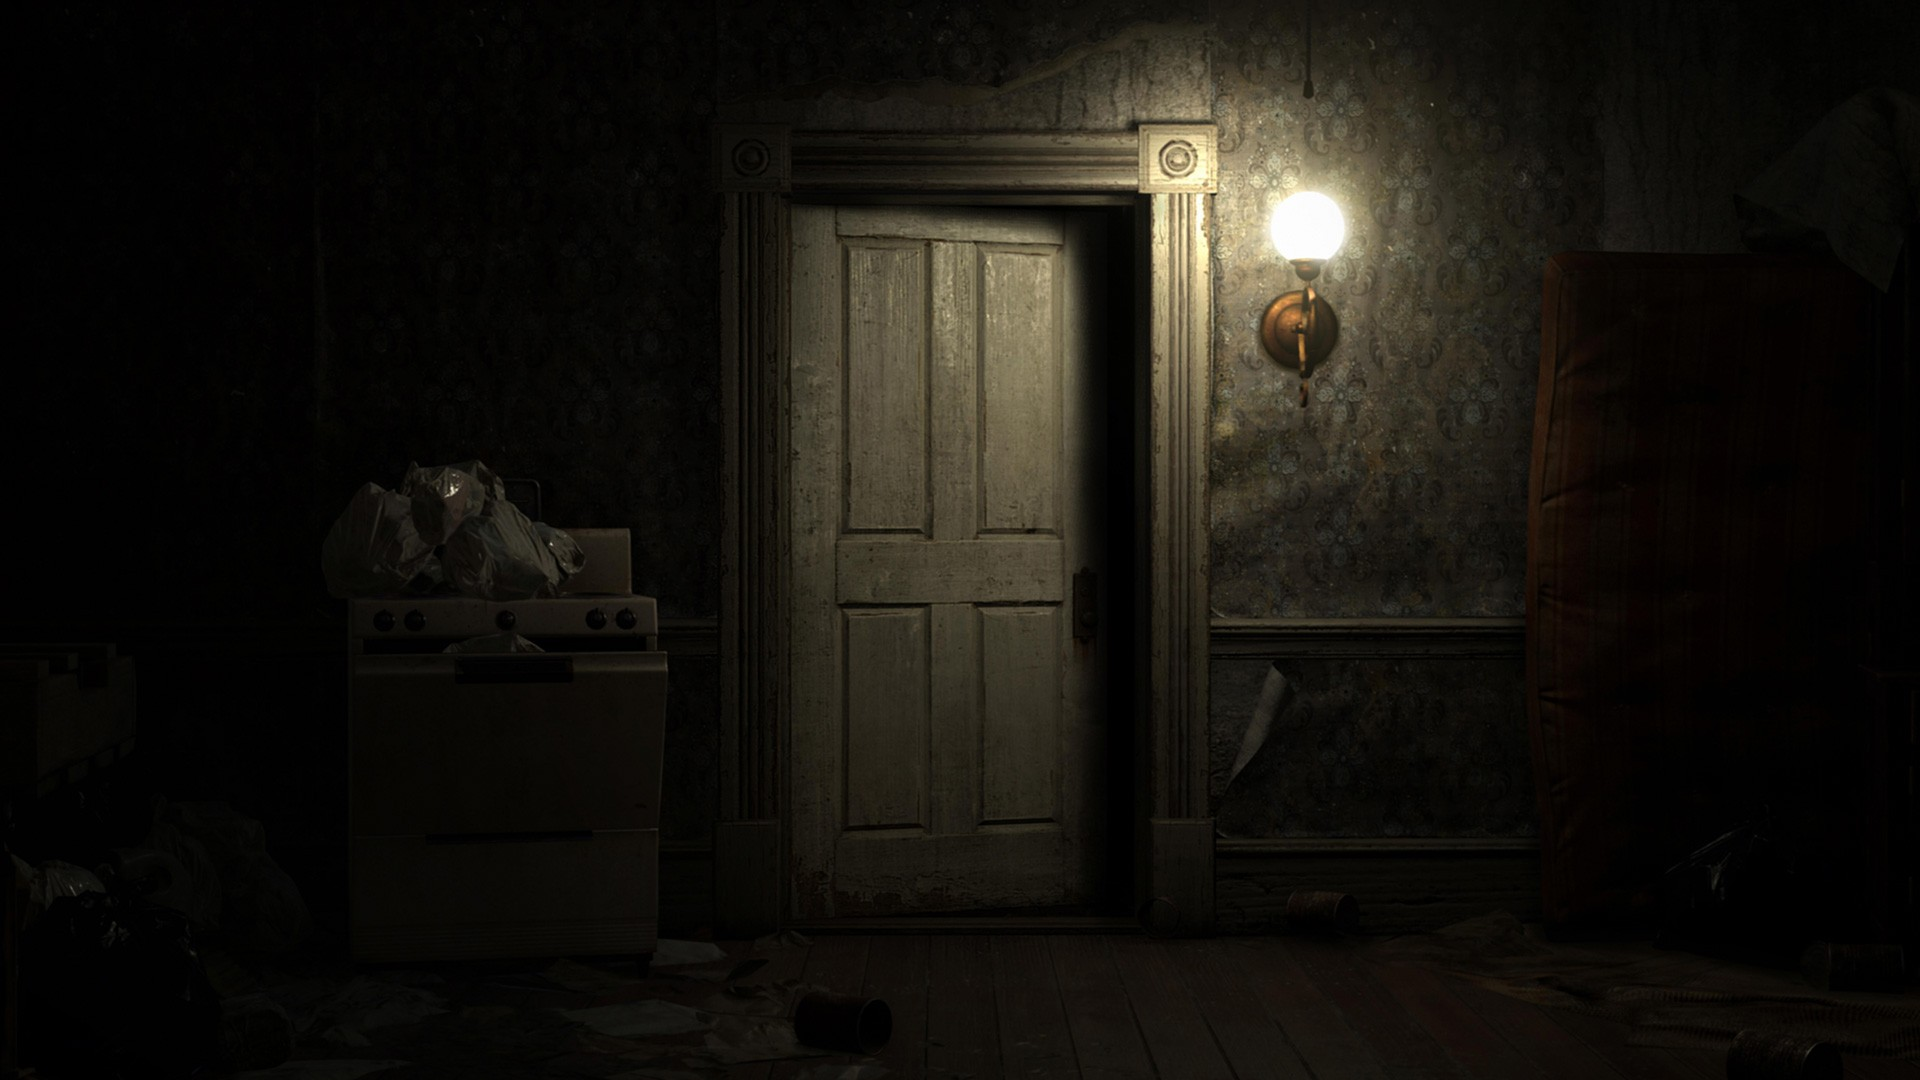 Resident Evil 7 Wallpaper Download Free Beautiful Backgrounds